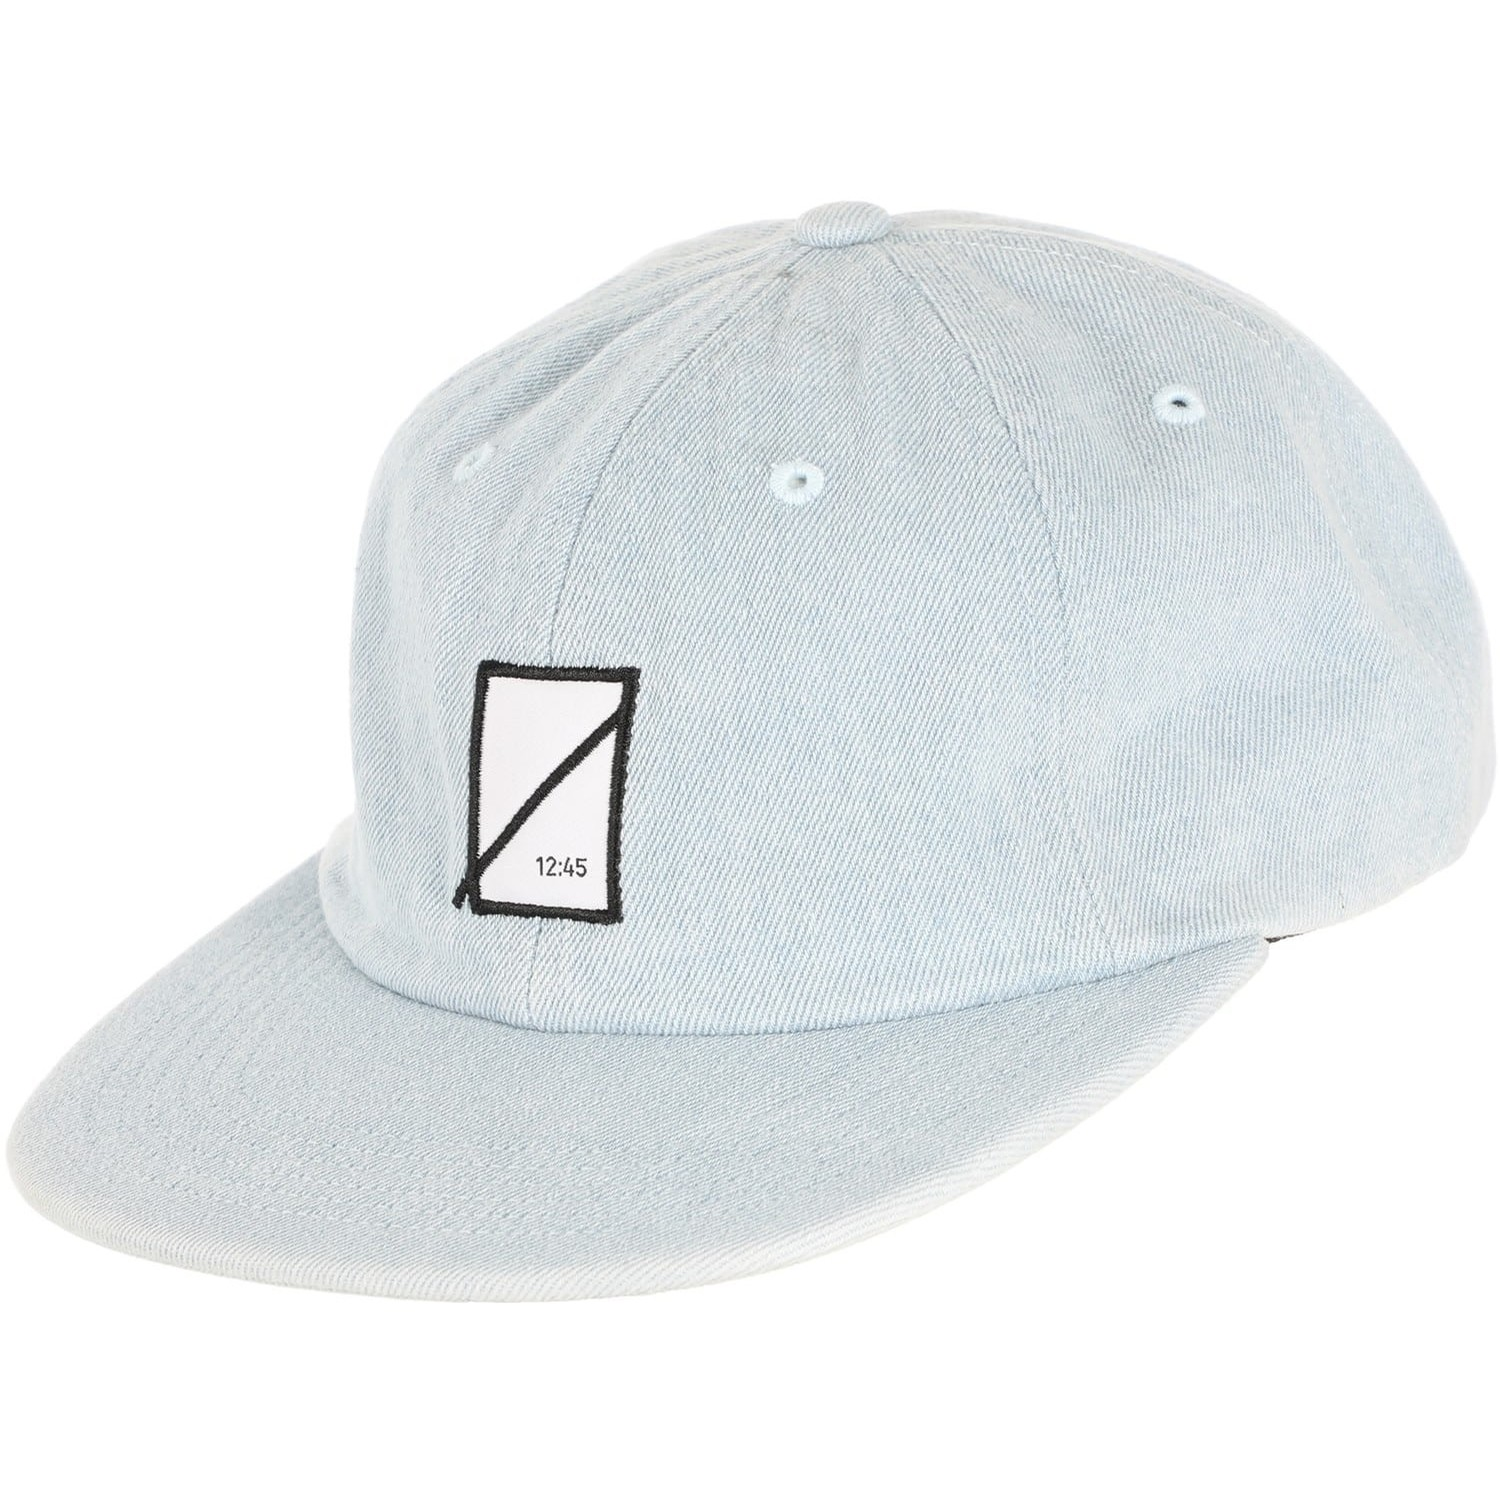 49b4b9f5d Edition Symbol Denim 6-Panel Hat (Bleached Indigo)